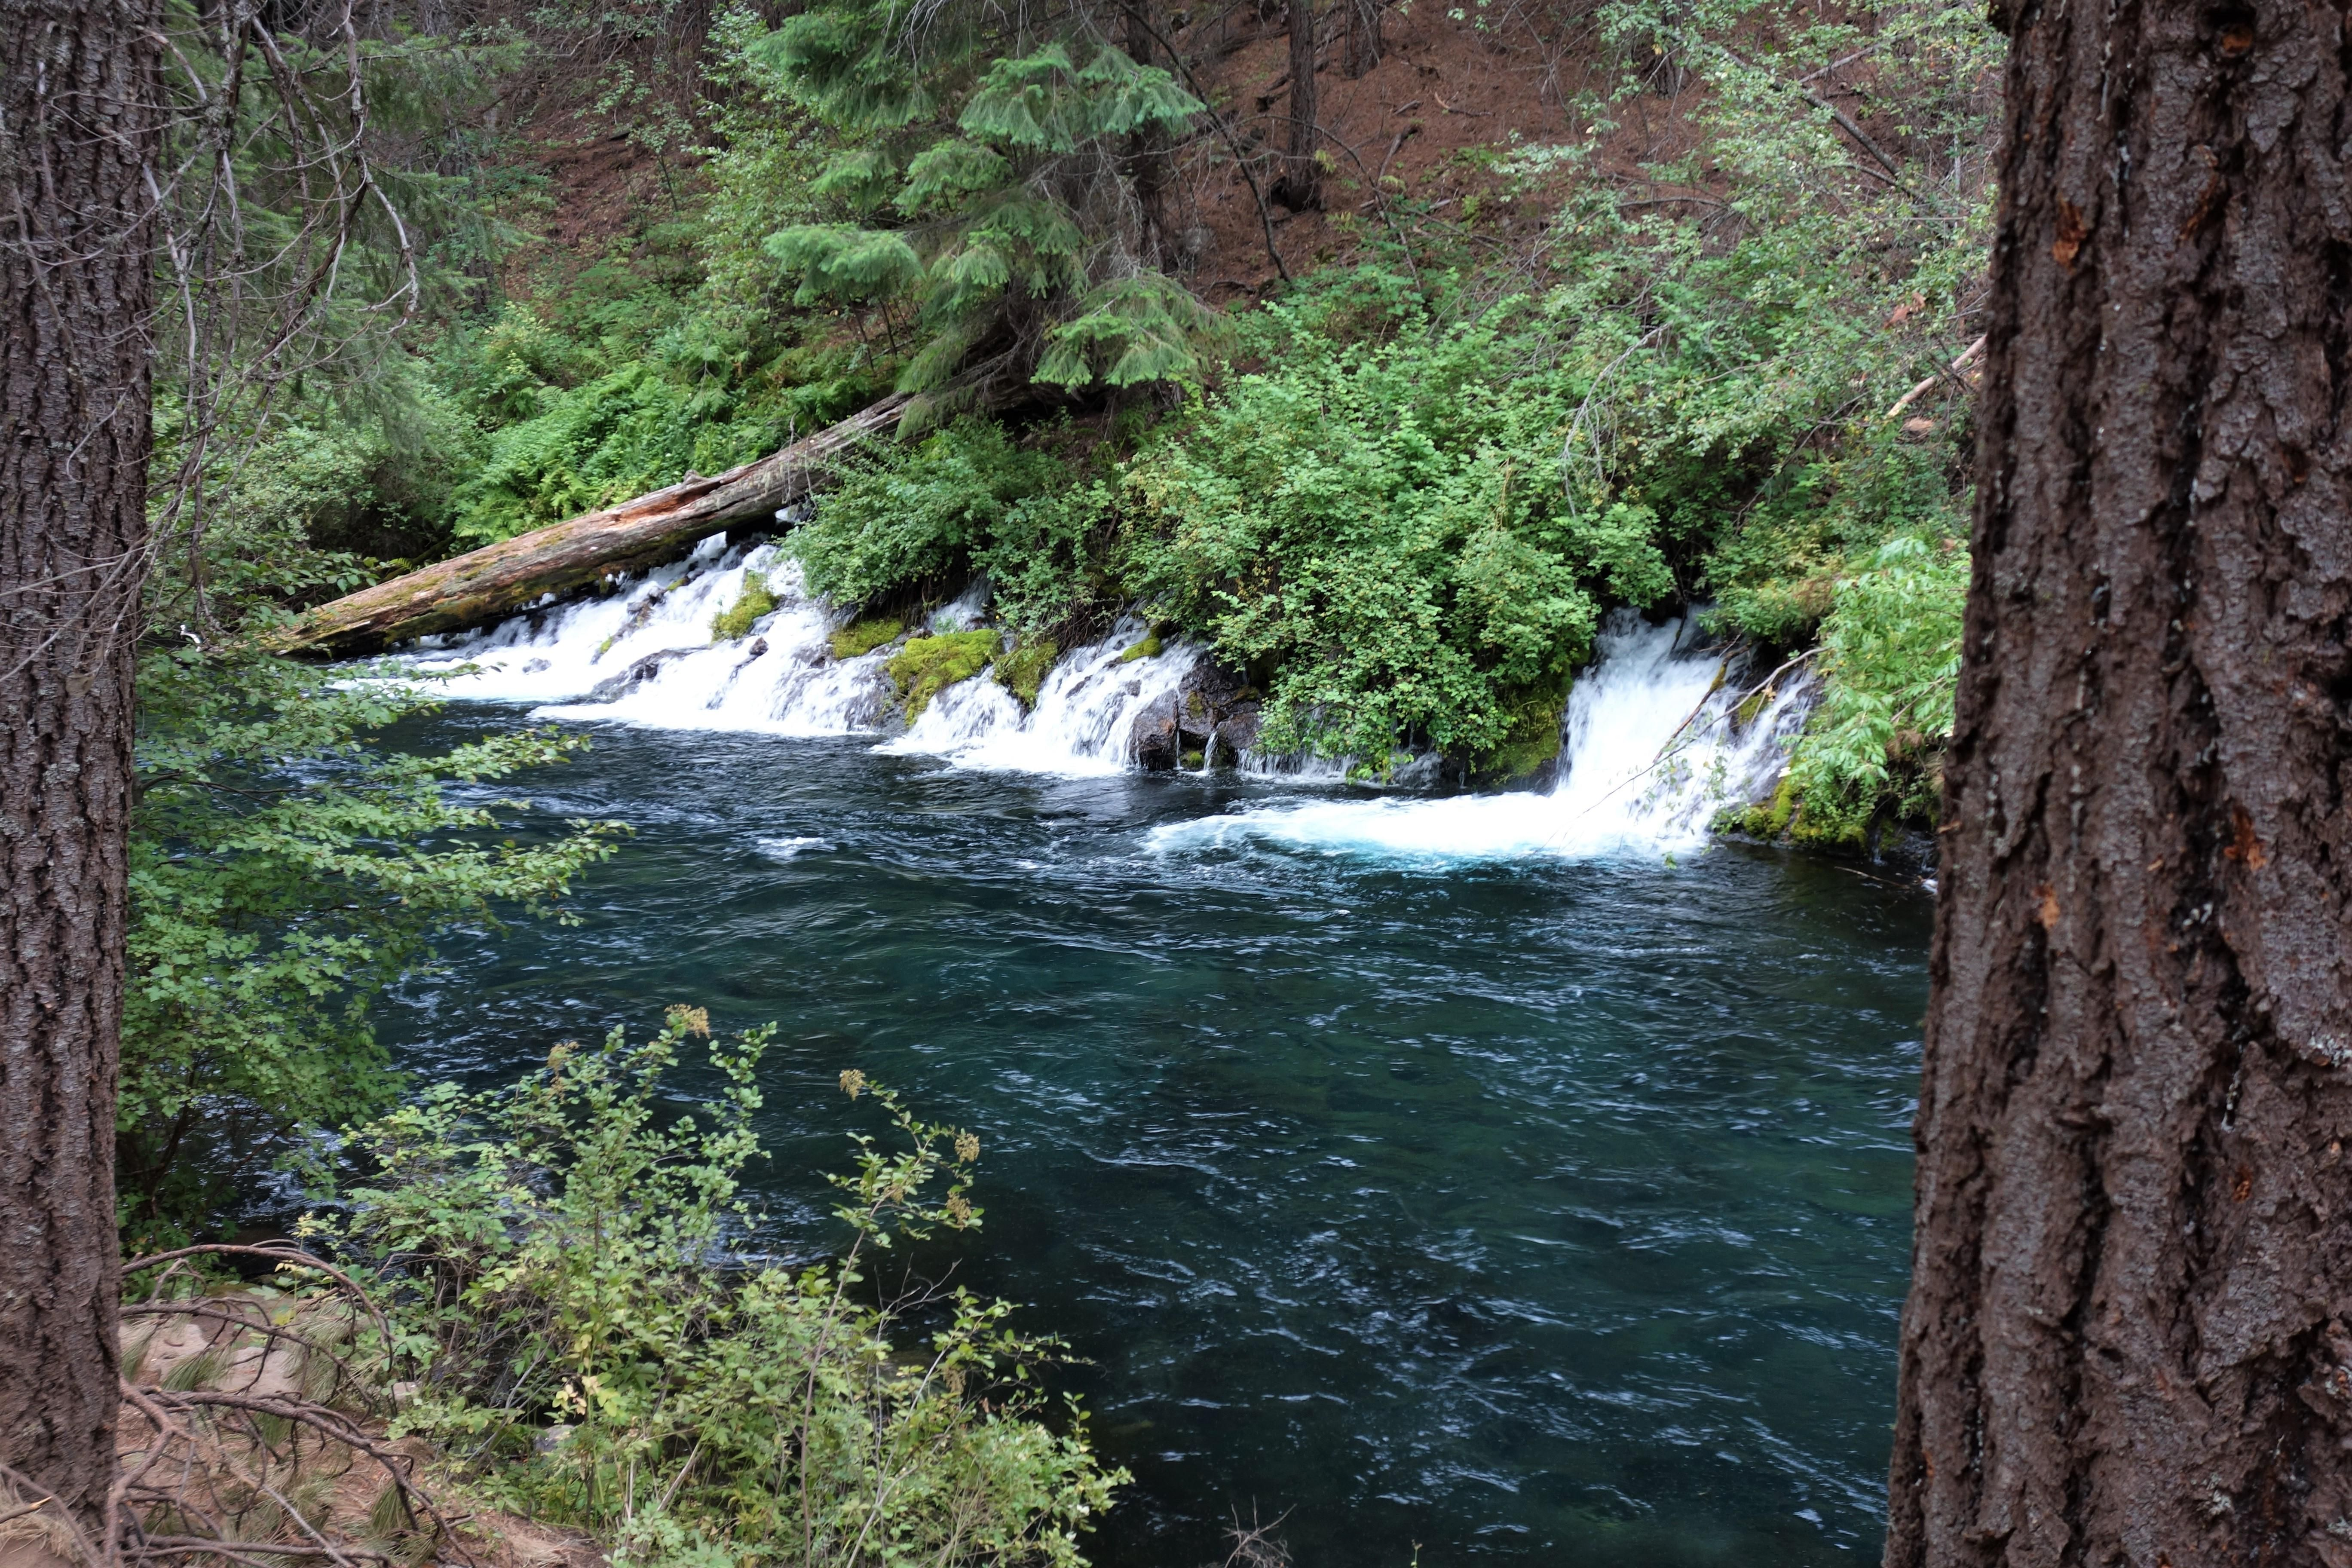 Spring water gushing from the hillside into the metolius river